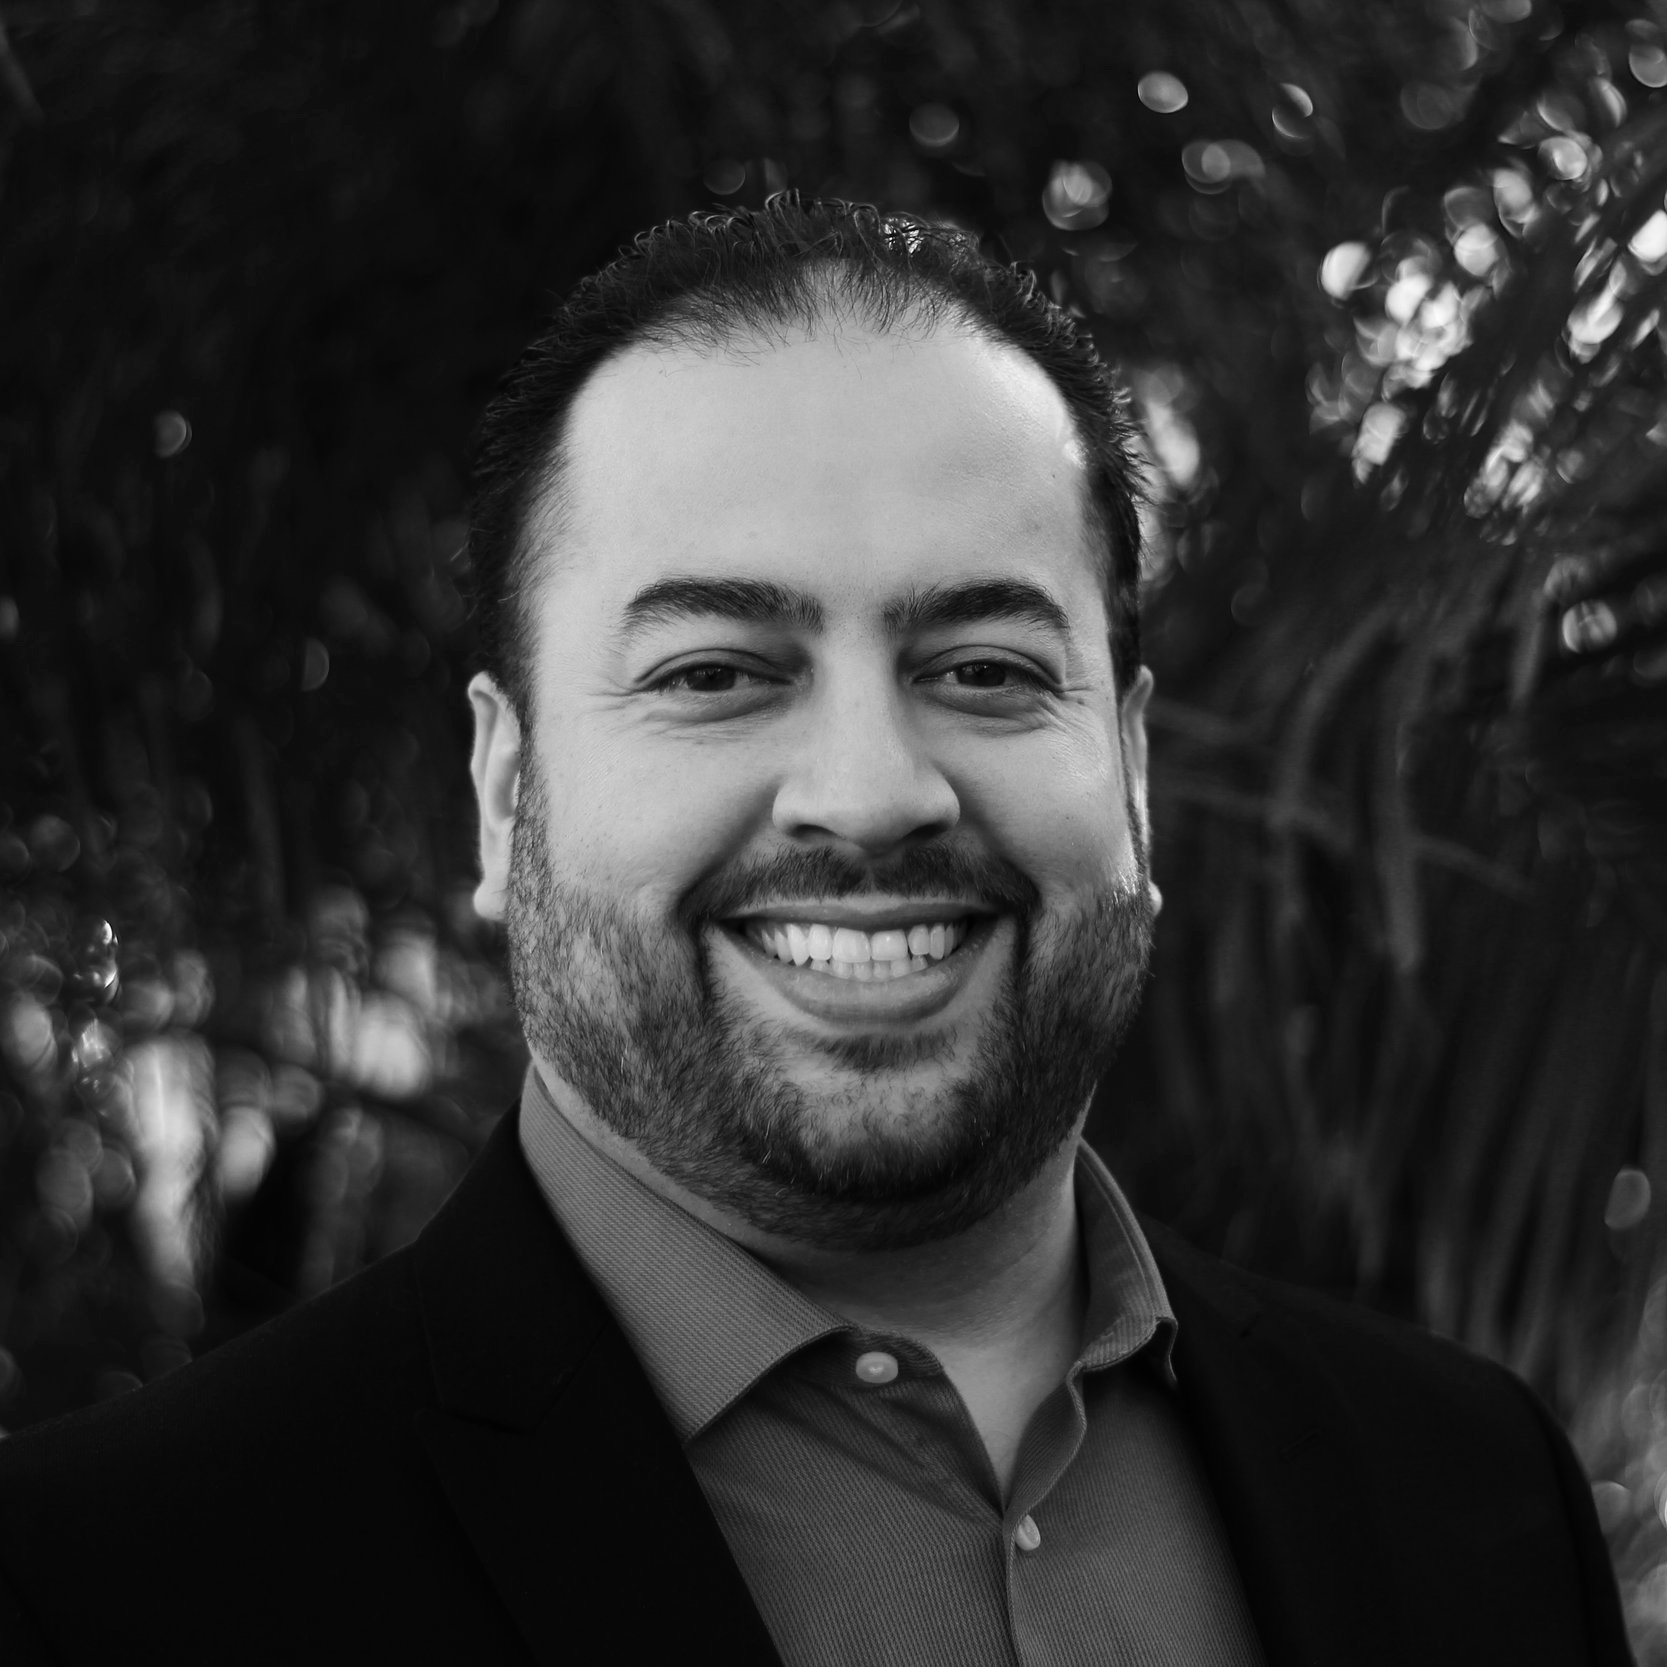 Ray Medina - Director, Vocal ArtsTeaches: AP Music Theory, Golden Lantern Show Choir, Women's Ensemble, Vocal Ensemble, Blue Lantern Jazz Ensemble, SOCSA Musical/Comedy PErmmedina@capousd.org 949-496-6666 ext. 11100Ray Medina is in his tenth year teaching vocal music at the high school level. His choirs have consistently earned unanimous superior ratings at festivals and have won several competitions throughout the western states. He has had the privilege of conducting choirs in Carnegie Hall and St. Patrick's Cathedral in New York City, and has performed on stage at the Orange County Performing Arts Center, Hollywood Bowl, Walt Disney Concert Hall, and La Madeleine in Paris, France. His choirs tour annually around the country, most recently traveling to Nashville, Seattle, San Francisco, and New York City. Mr. Medina earned his B.M. in Choral Conducting and Music Education from Chapman University, where he studied under the direction of Dr. William Hall and was awarded the Choral Conducting and Music Education Awards. Mr. Medina also attended California State University at Fullerton and completed coursework toward his M.M. in Choral Conducting, studying under the direction of Dr. Robert Istad and serving as the graduate conductor of the University Singers. Recently, Mr. Medina was the guest conductor for the Capistrano Unified School District Honor Choir held in Segerstrom Concert Hall. He has also served on staff at Wildwood Music Camp in Big Bear, CA. Mr. Medina currently lives in Mission Viejo with his two boys, Isaiah and Caleb.